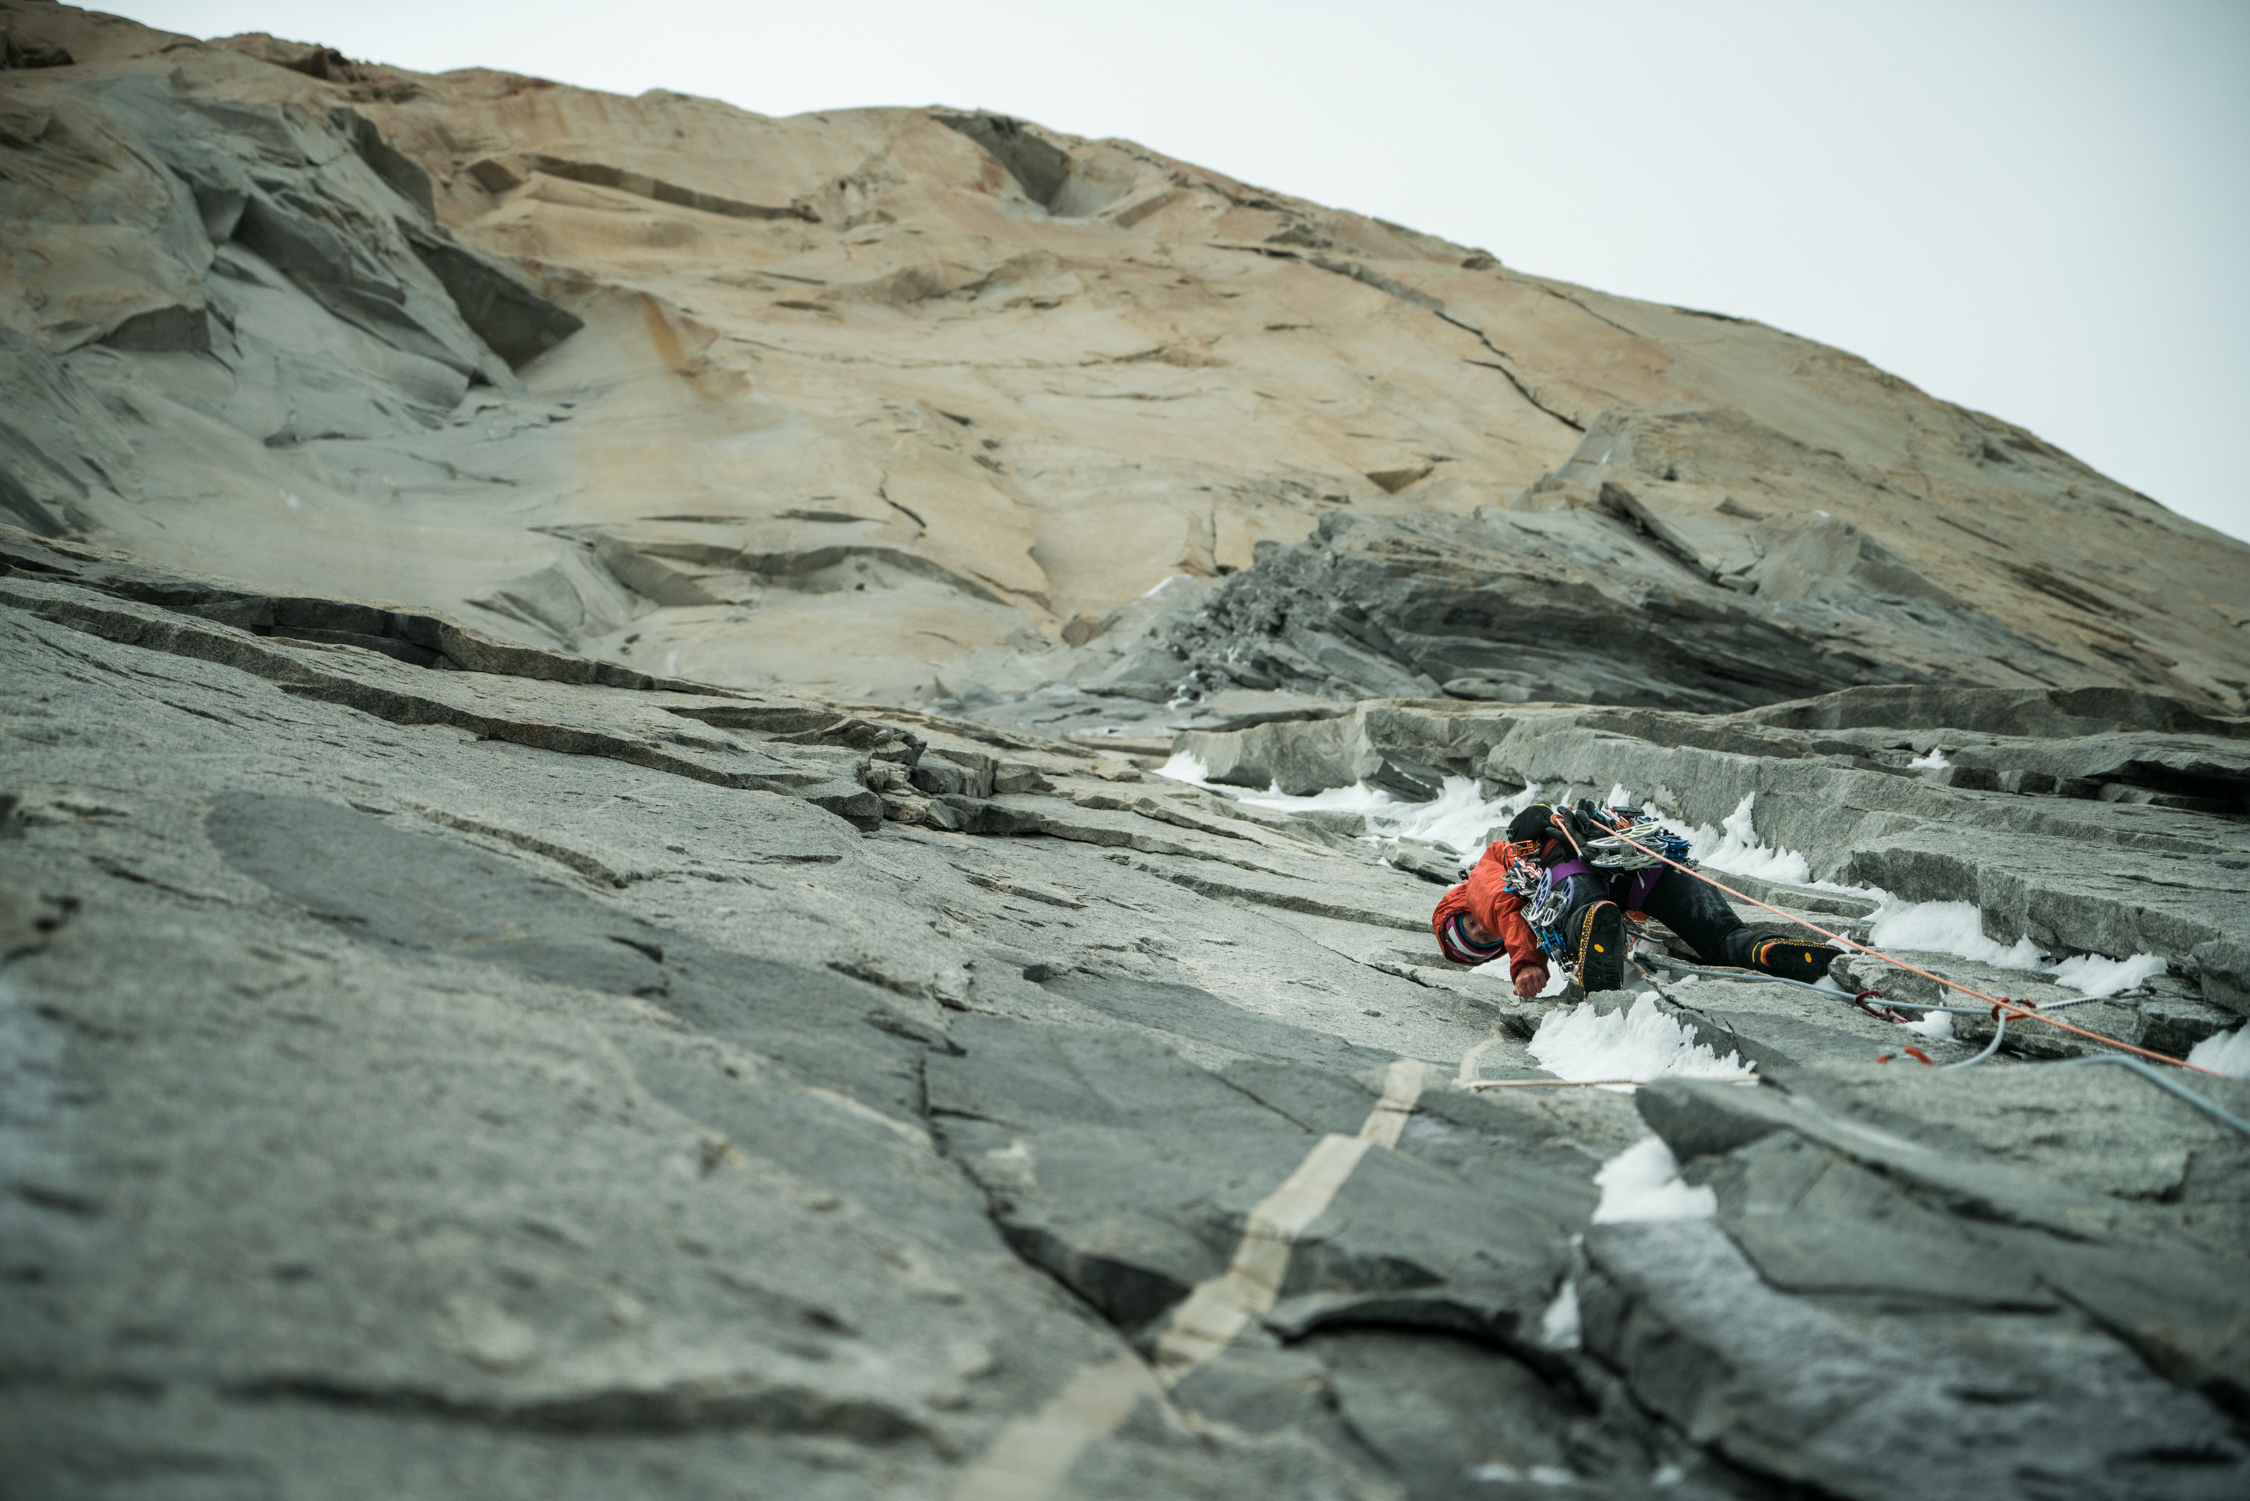 Brette Harrington leads an offwidth choked with ice and sugar snow in the vicinity of Pitch 9 on Riders on the Storm (VI 5.12d/5.13 A3, 1300m), Torre Central, Torres del Paine, Patagonia. She used a variety of tricks to make progress, including aid moves off her ice axes. [Photo] Drew Smith